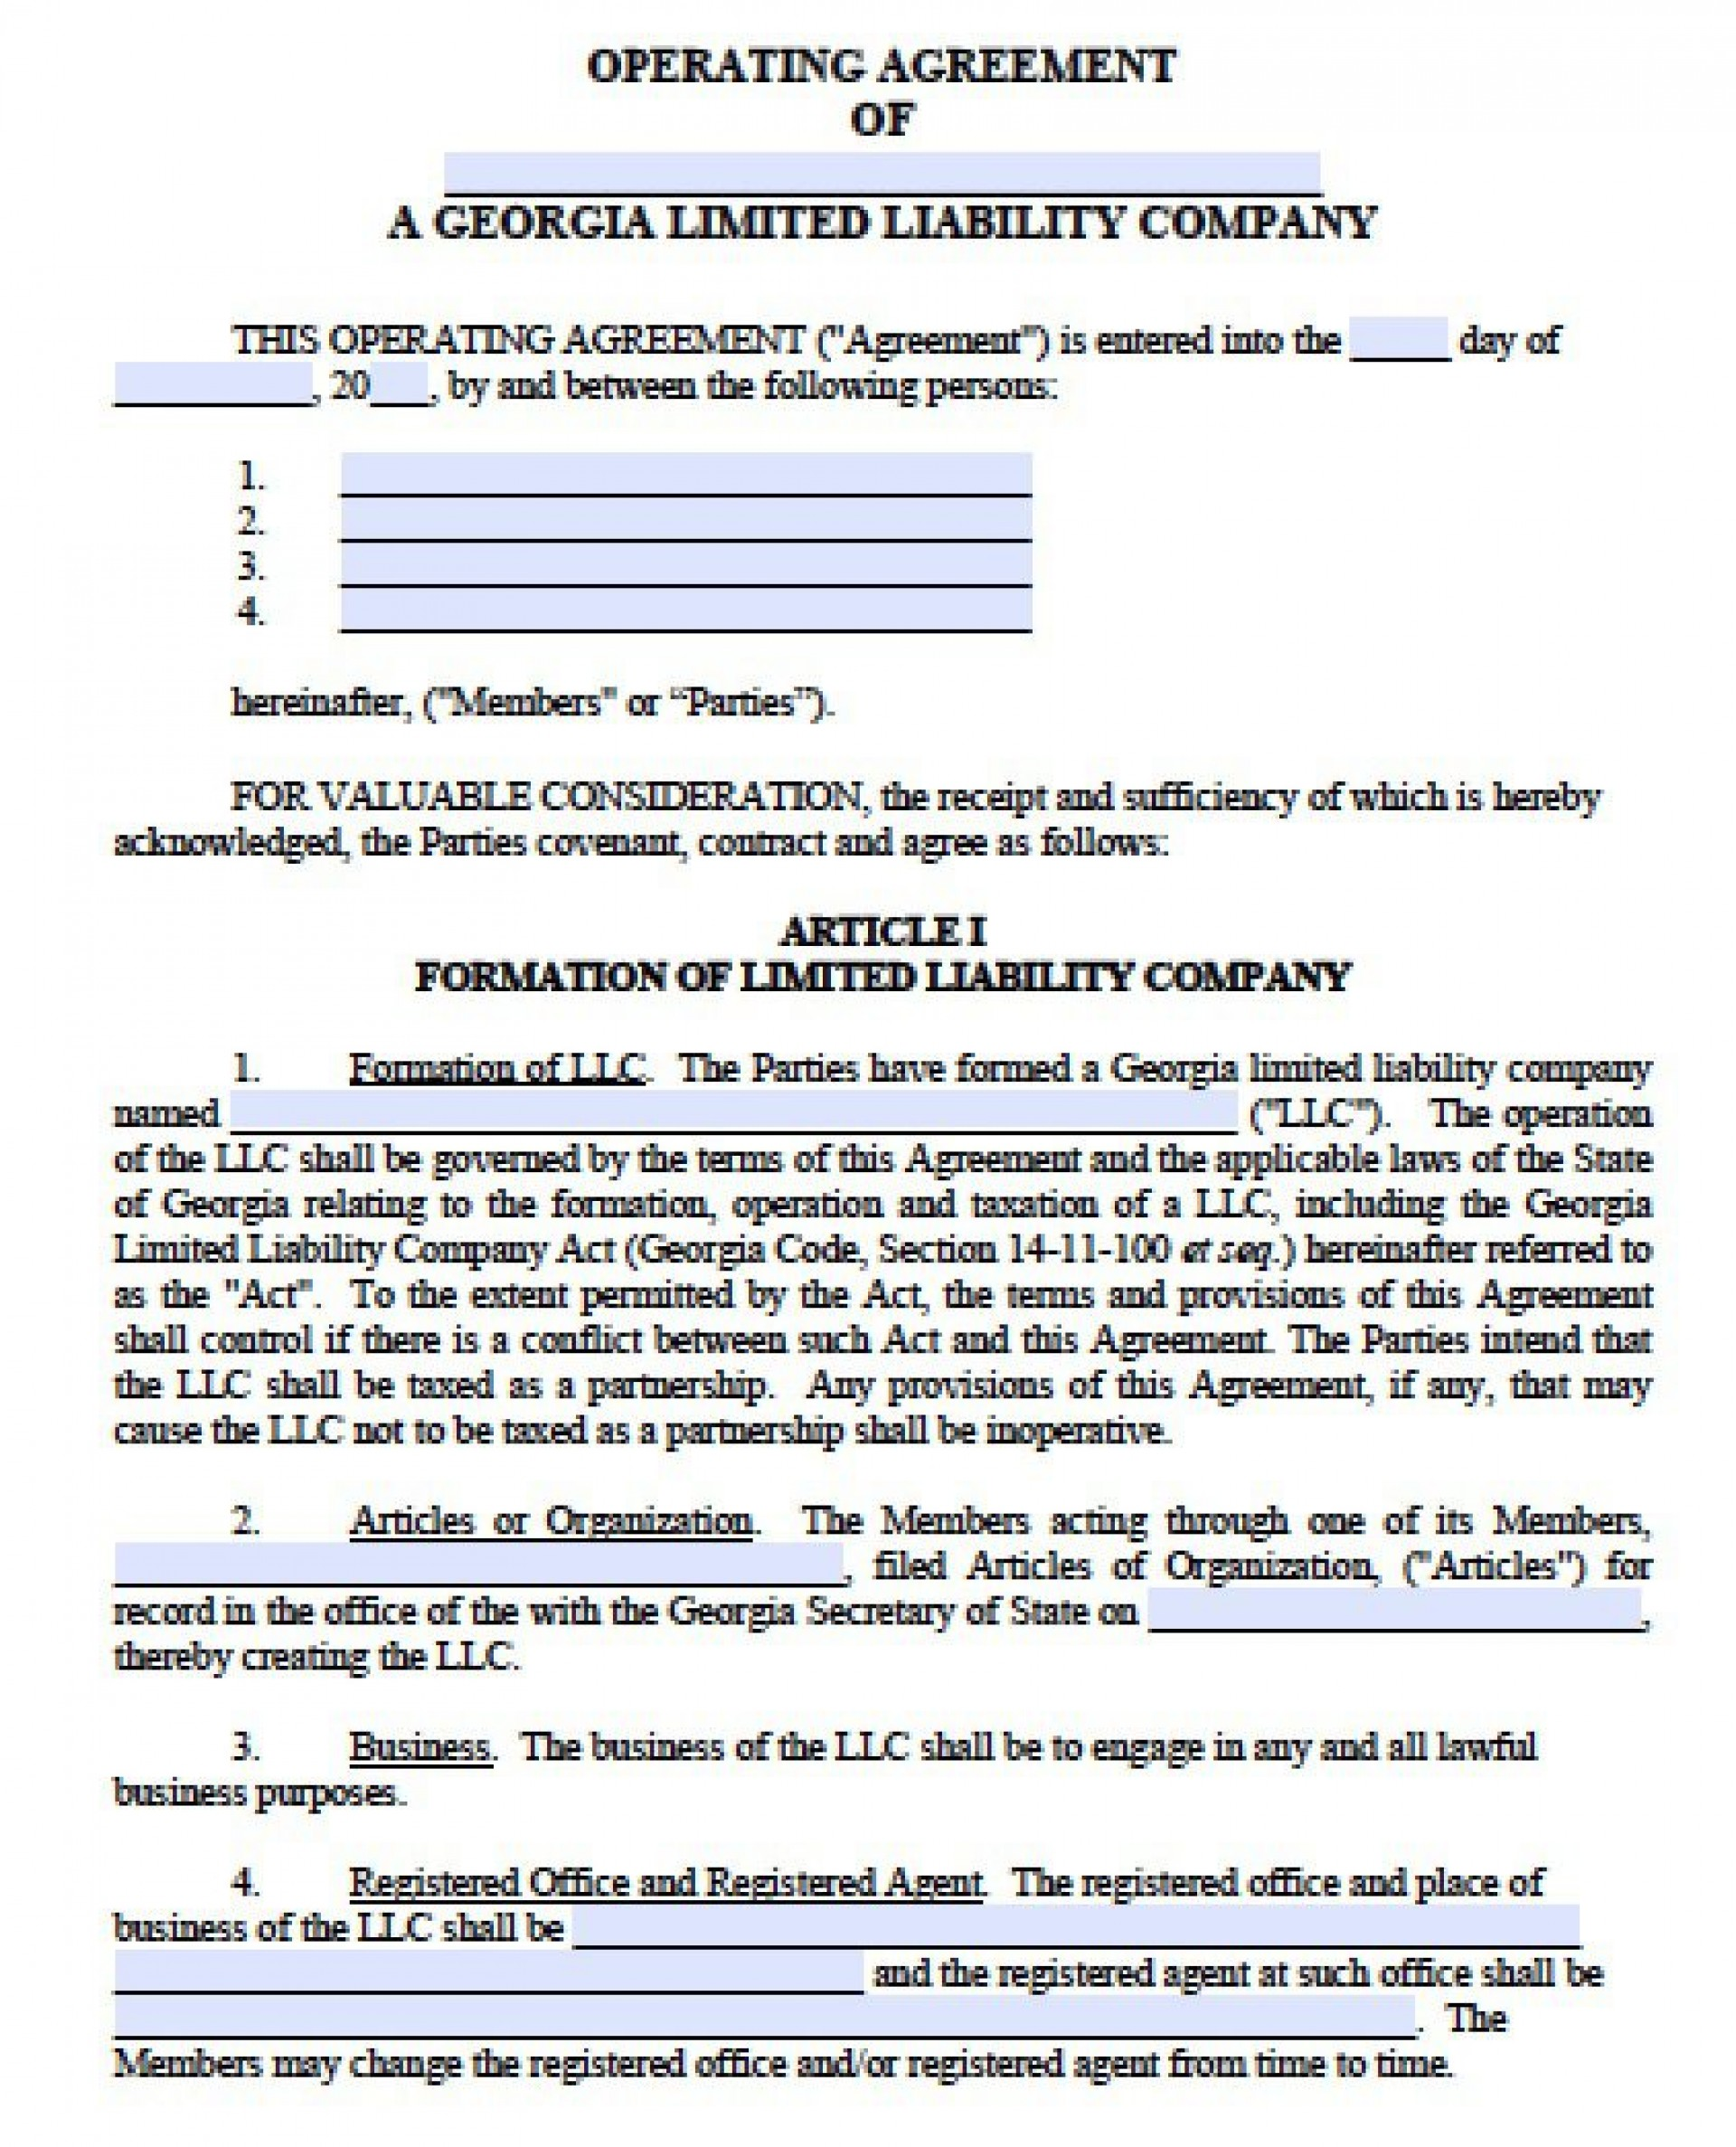 003 Fearsome Operation Agreement Llc Template Highest Quality  Operating Florida Indiana Single Member California1920